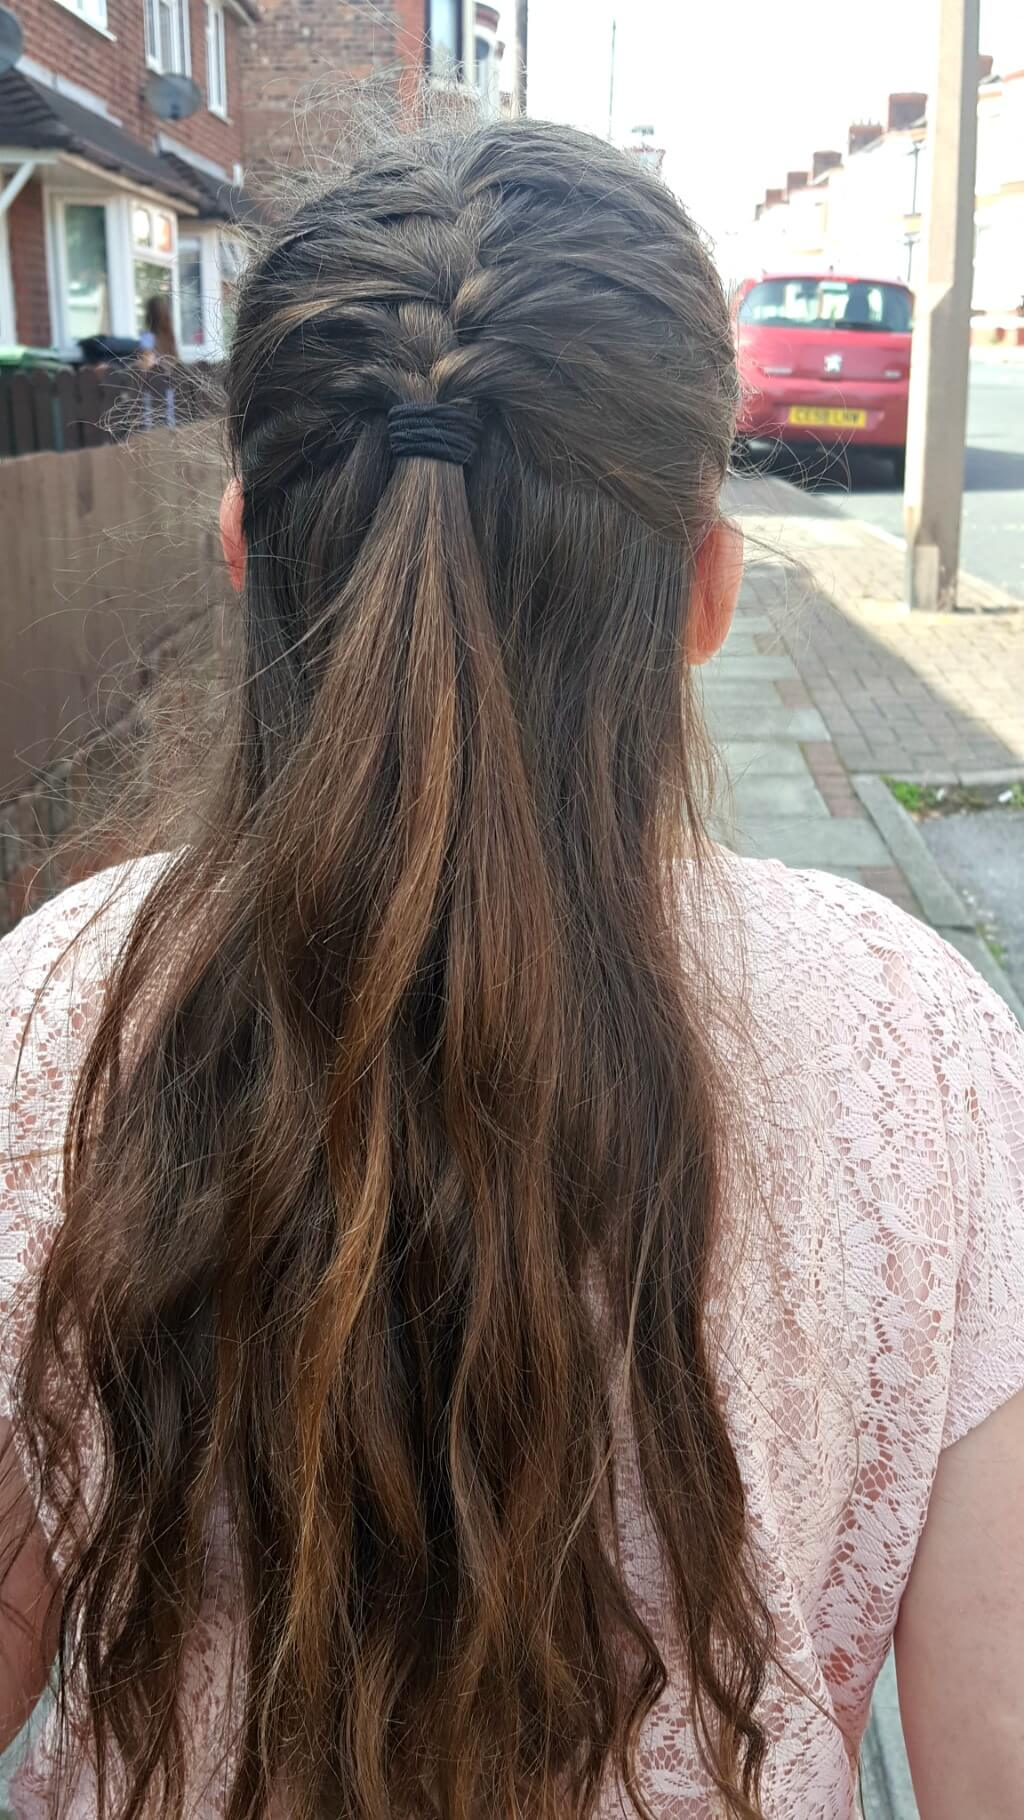 another school disco outfit picture of braided hairstyle